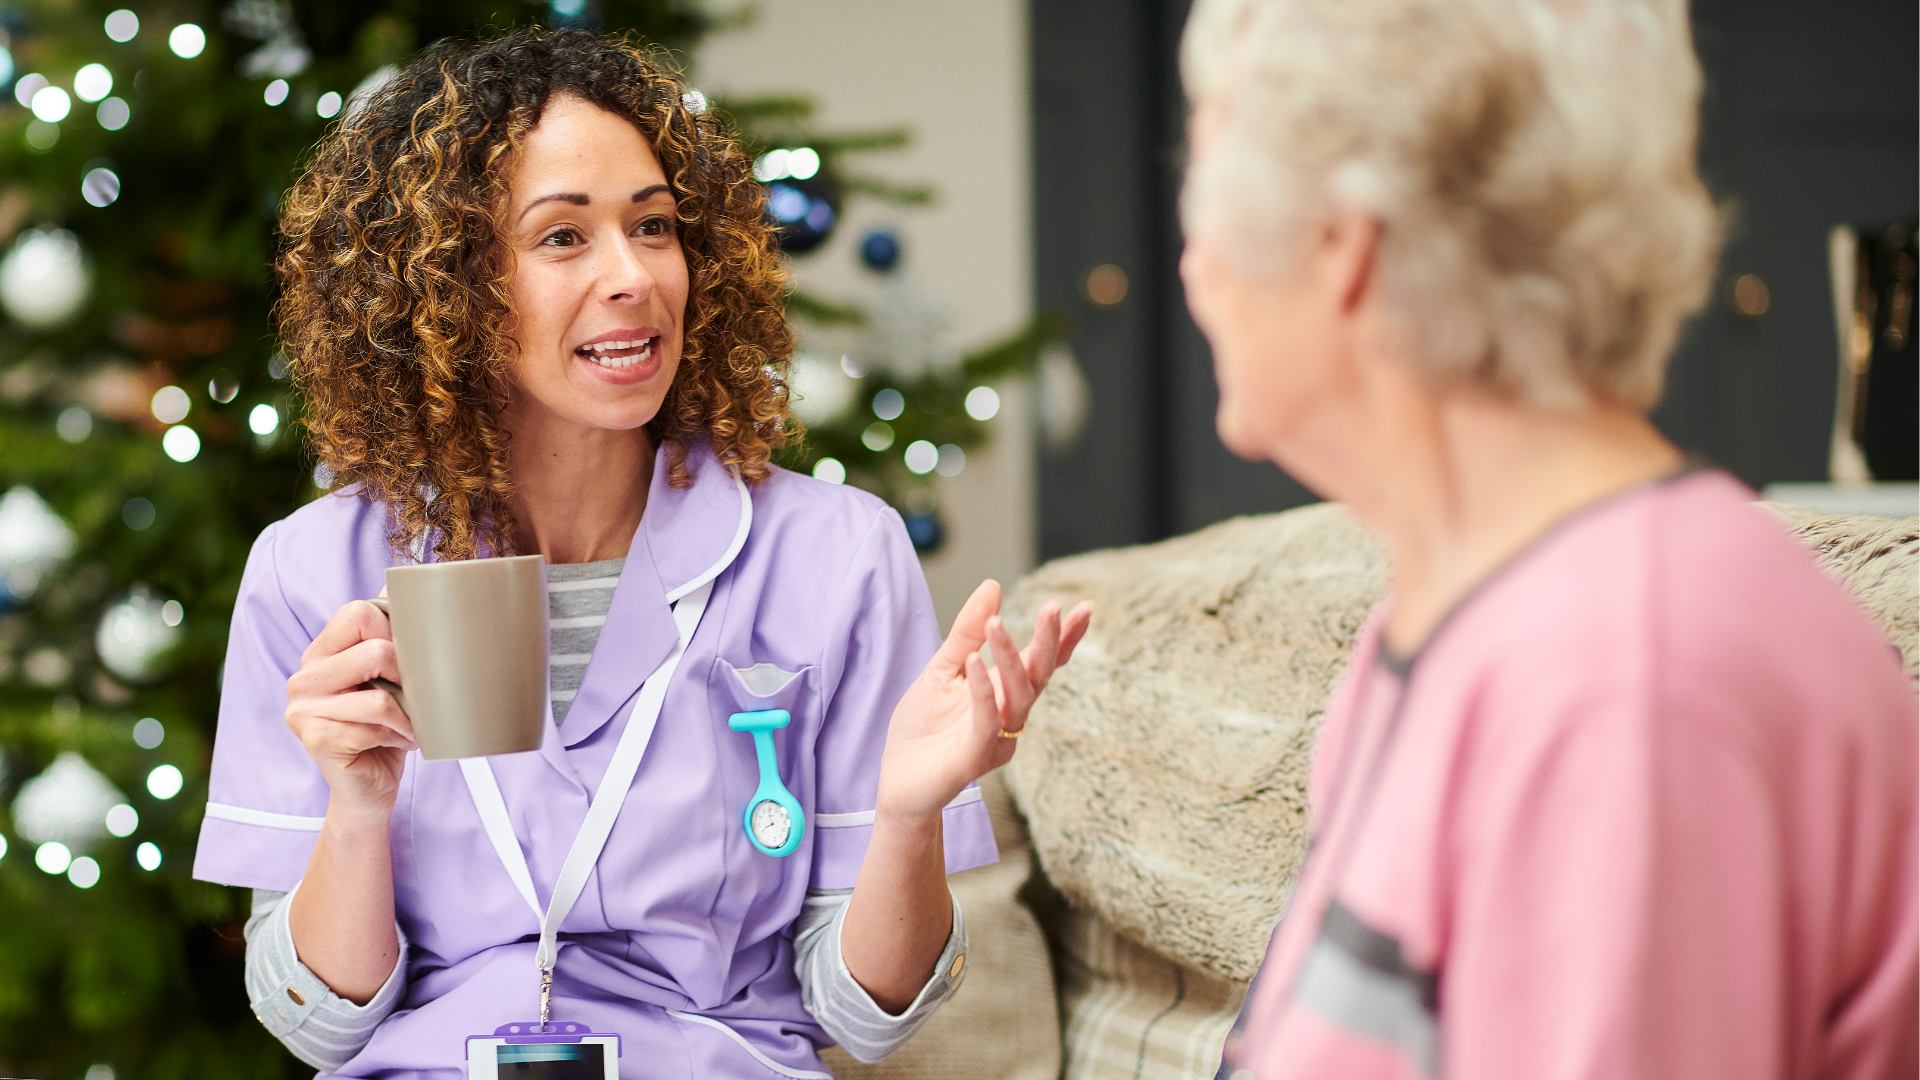 How Can Telecommunications Help Care Workers?